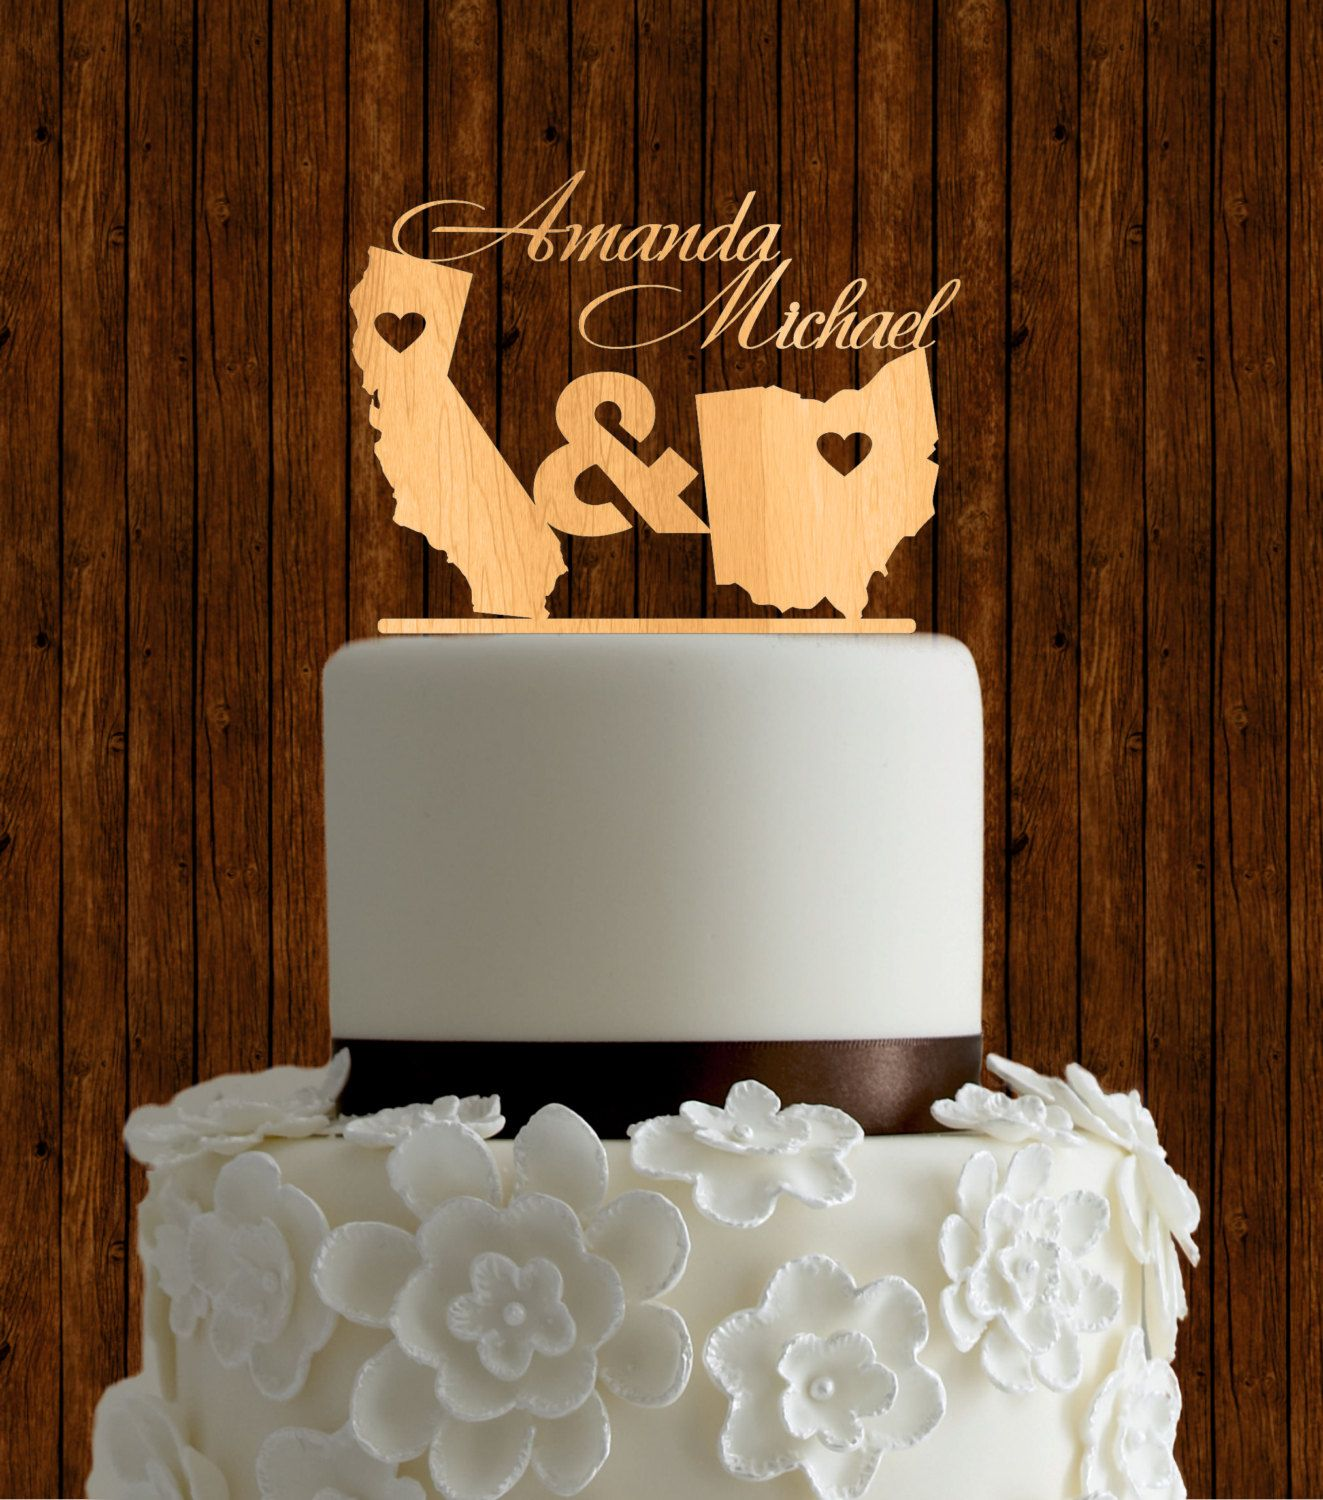 20 unique wedding cake toppers cute ideas for topping your 20 unique wedding cake toppers cute ideas for topping your wedding cake junglespirit Gallery